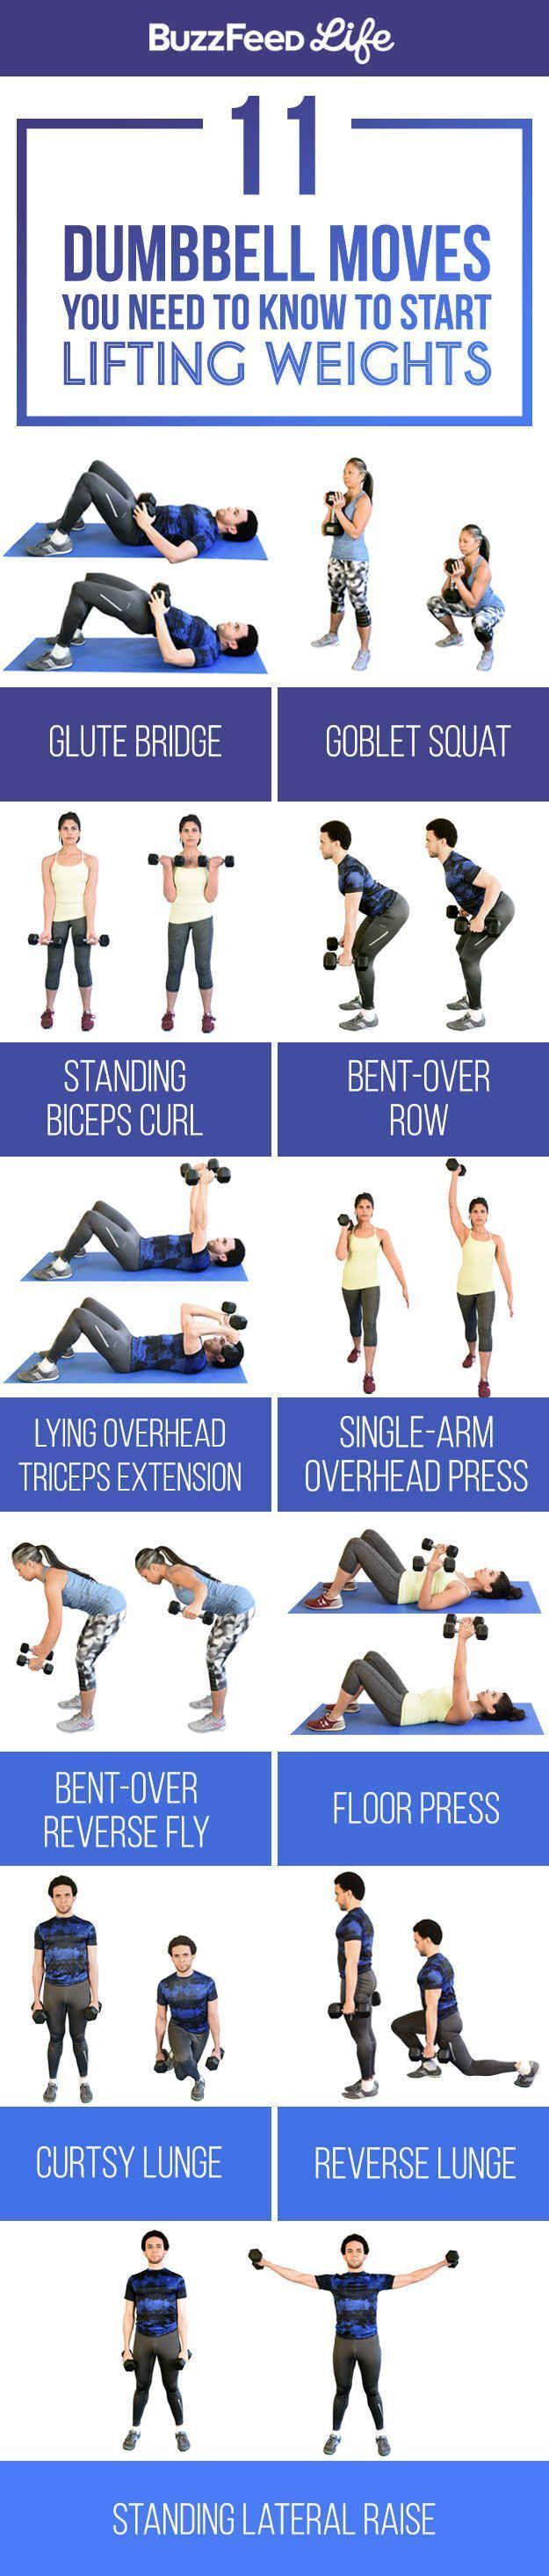 11 Dumbbell Moves You Should Know To Start Lifting Weights.  find more relevant stuff: victoriajohnson.wordpress.com